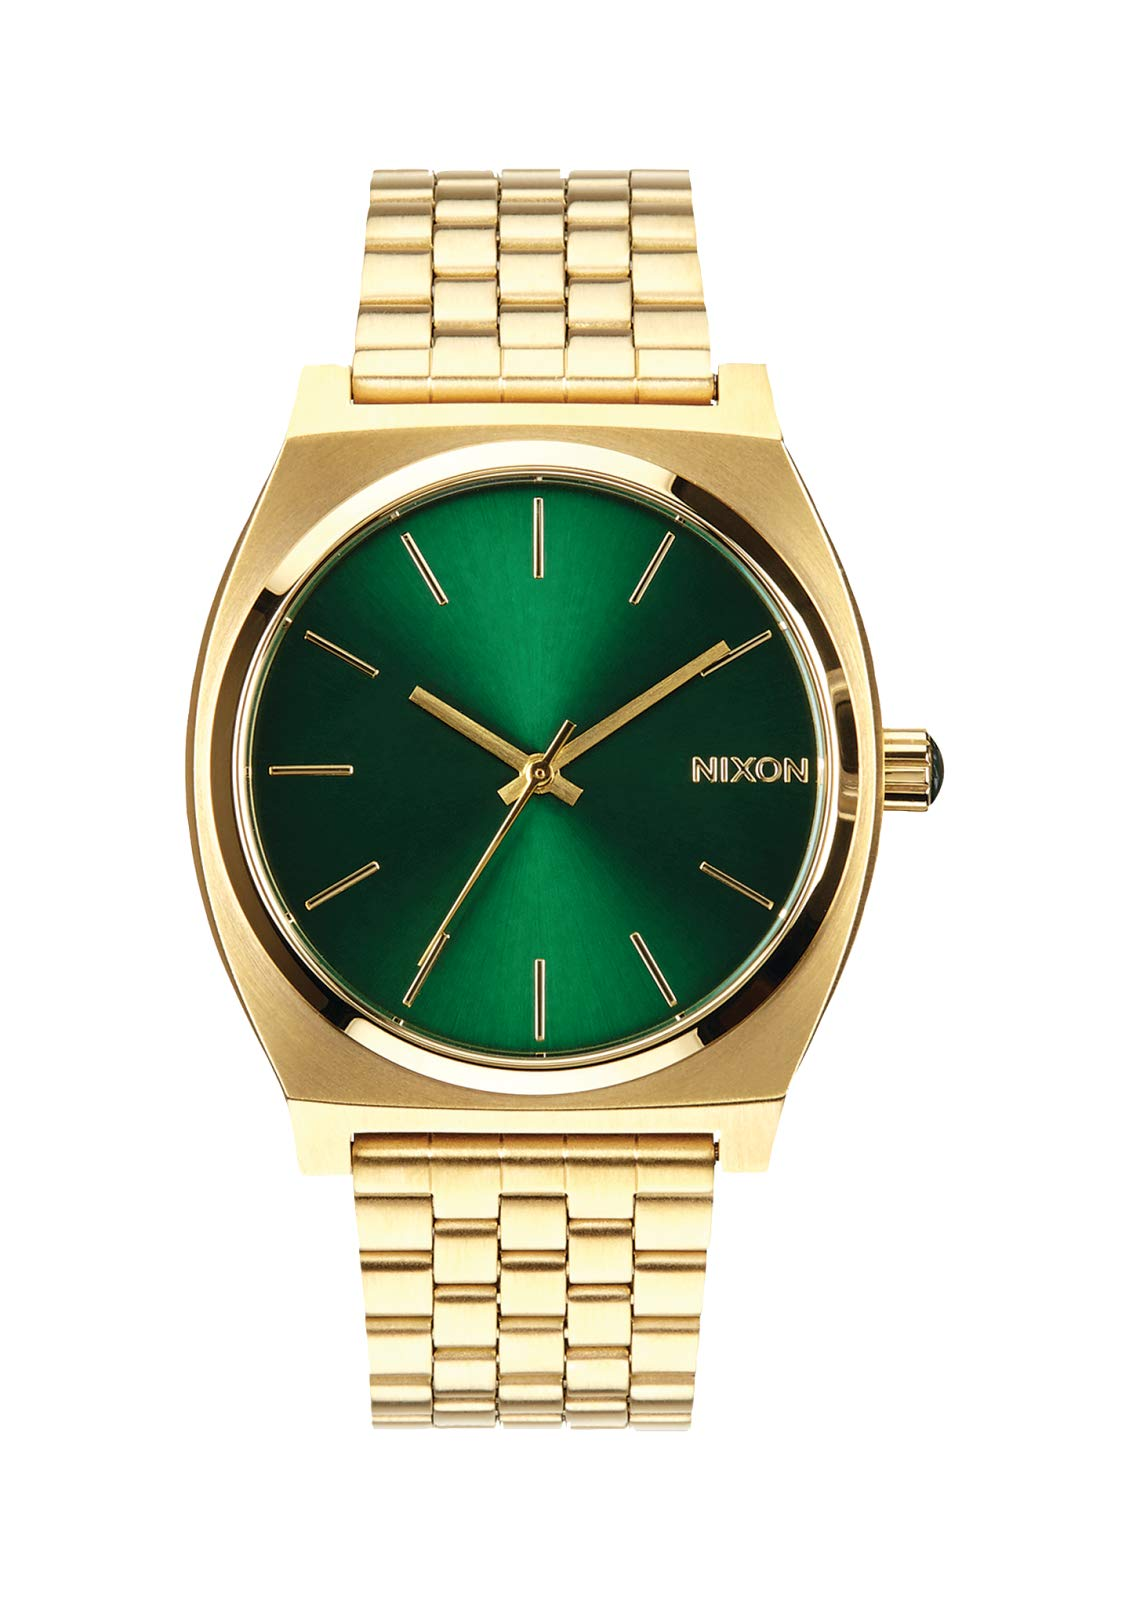 NIXON Time Teller A052 - Gold/Green Sunray - 107M Water Resistant Men's Analog Fashion Watch (37mm Watch Face, 19.5mm-18mm Stainless Steel Band) by NIXON